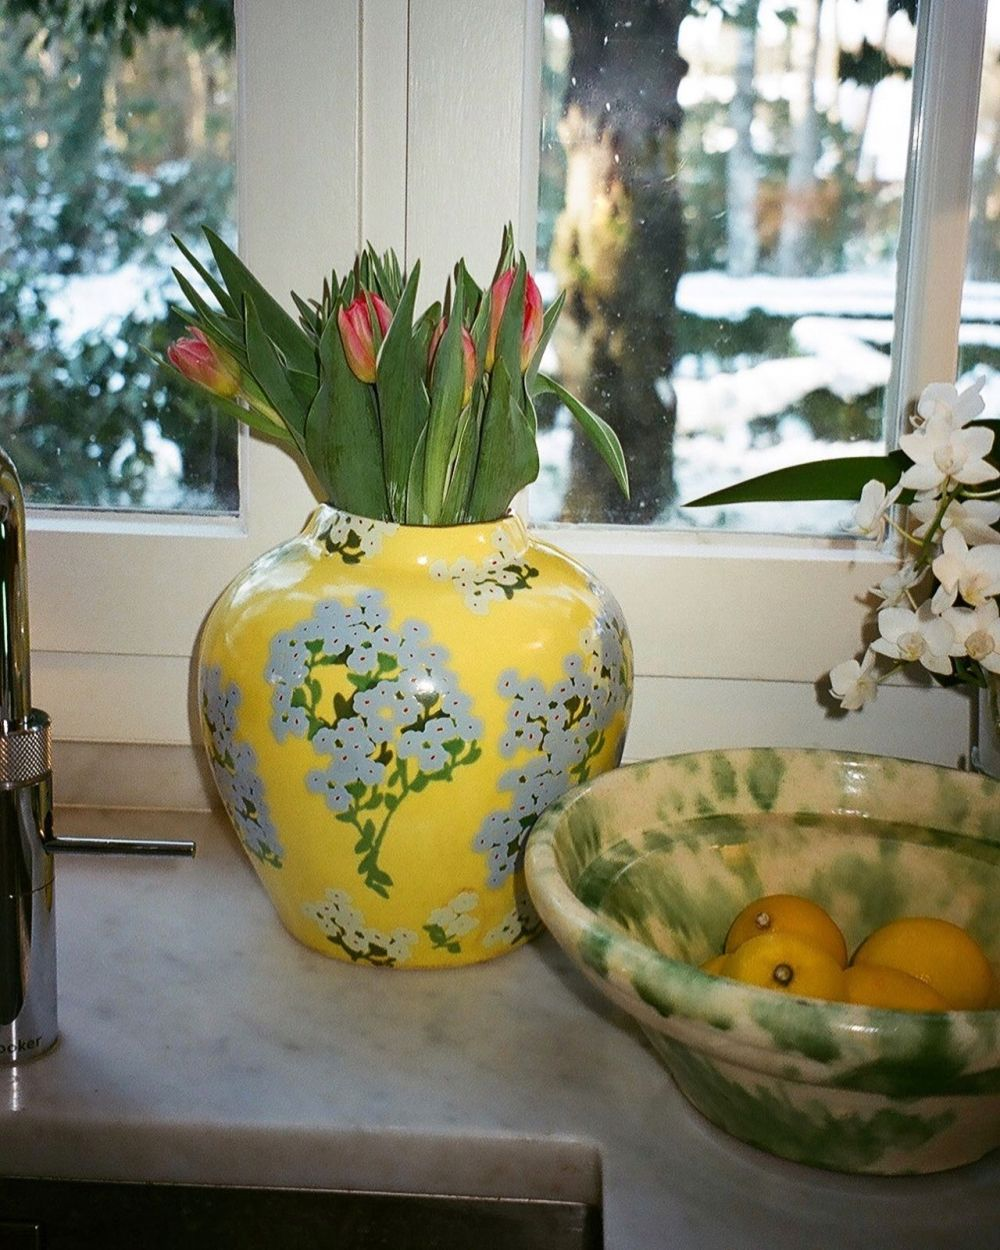 BLUE HORTENSIA ON A YELLOW CERAMIC BASE. ~ Our vases will launch in stores in June/July & we're counting down the days! 💛